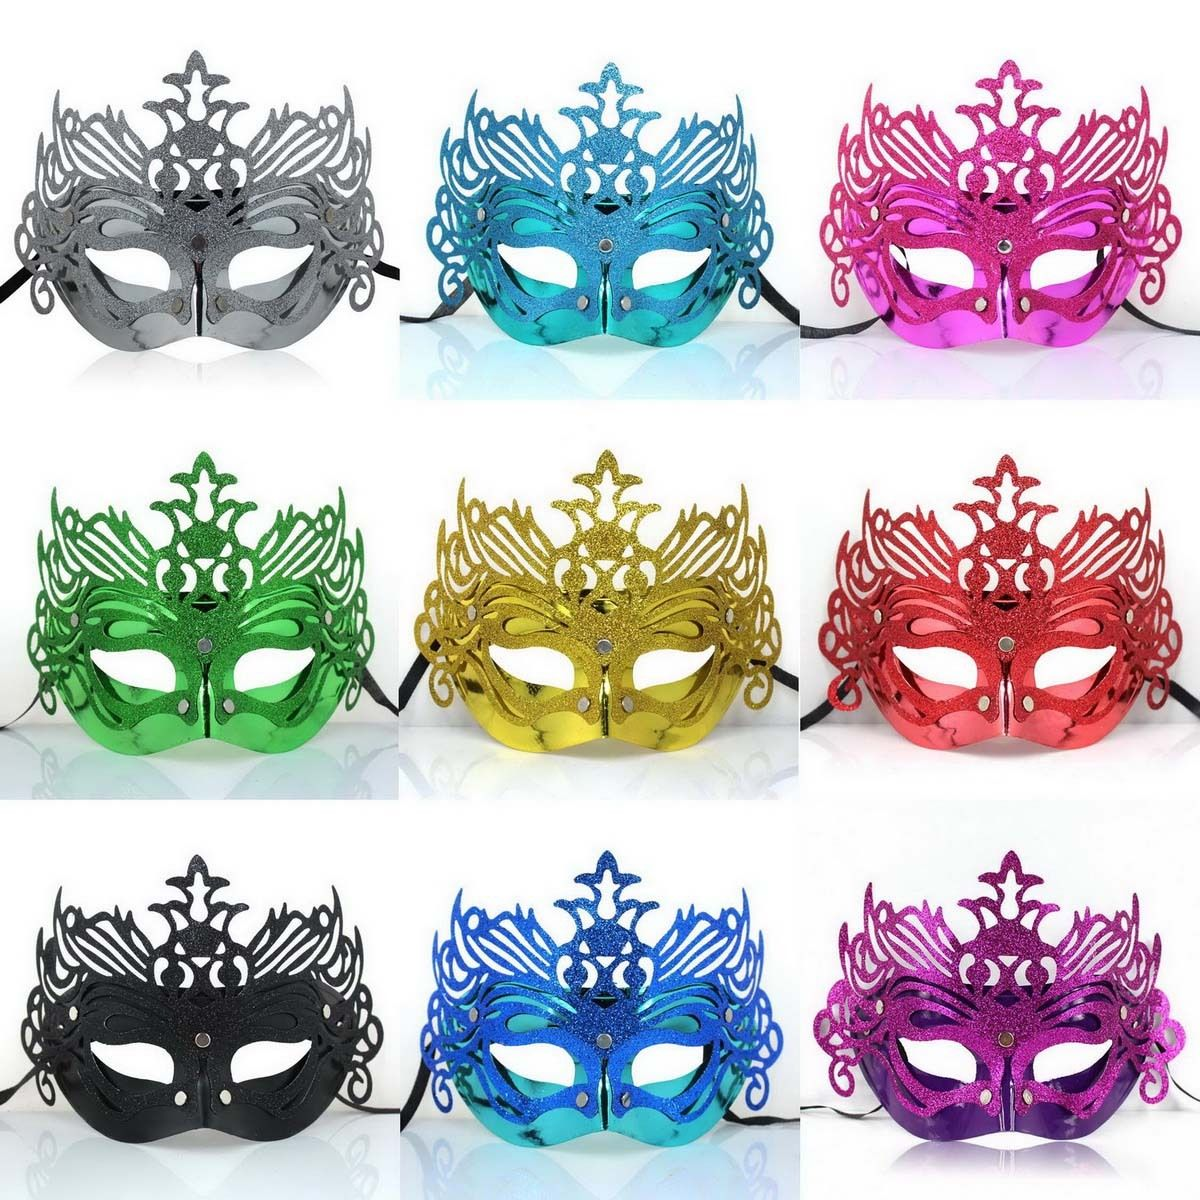 How To Decorate A Mask For A Masquerade Ball Venetian Carnival Gold Masquerade Party Mask  Masquerade Ball